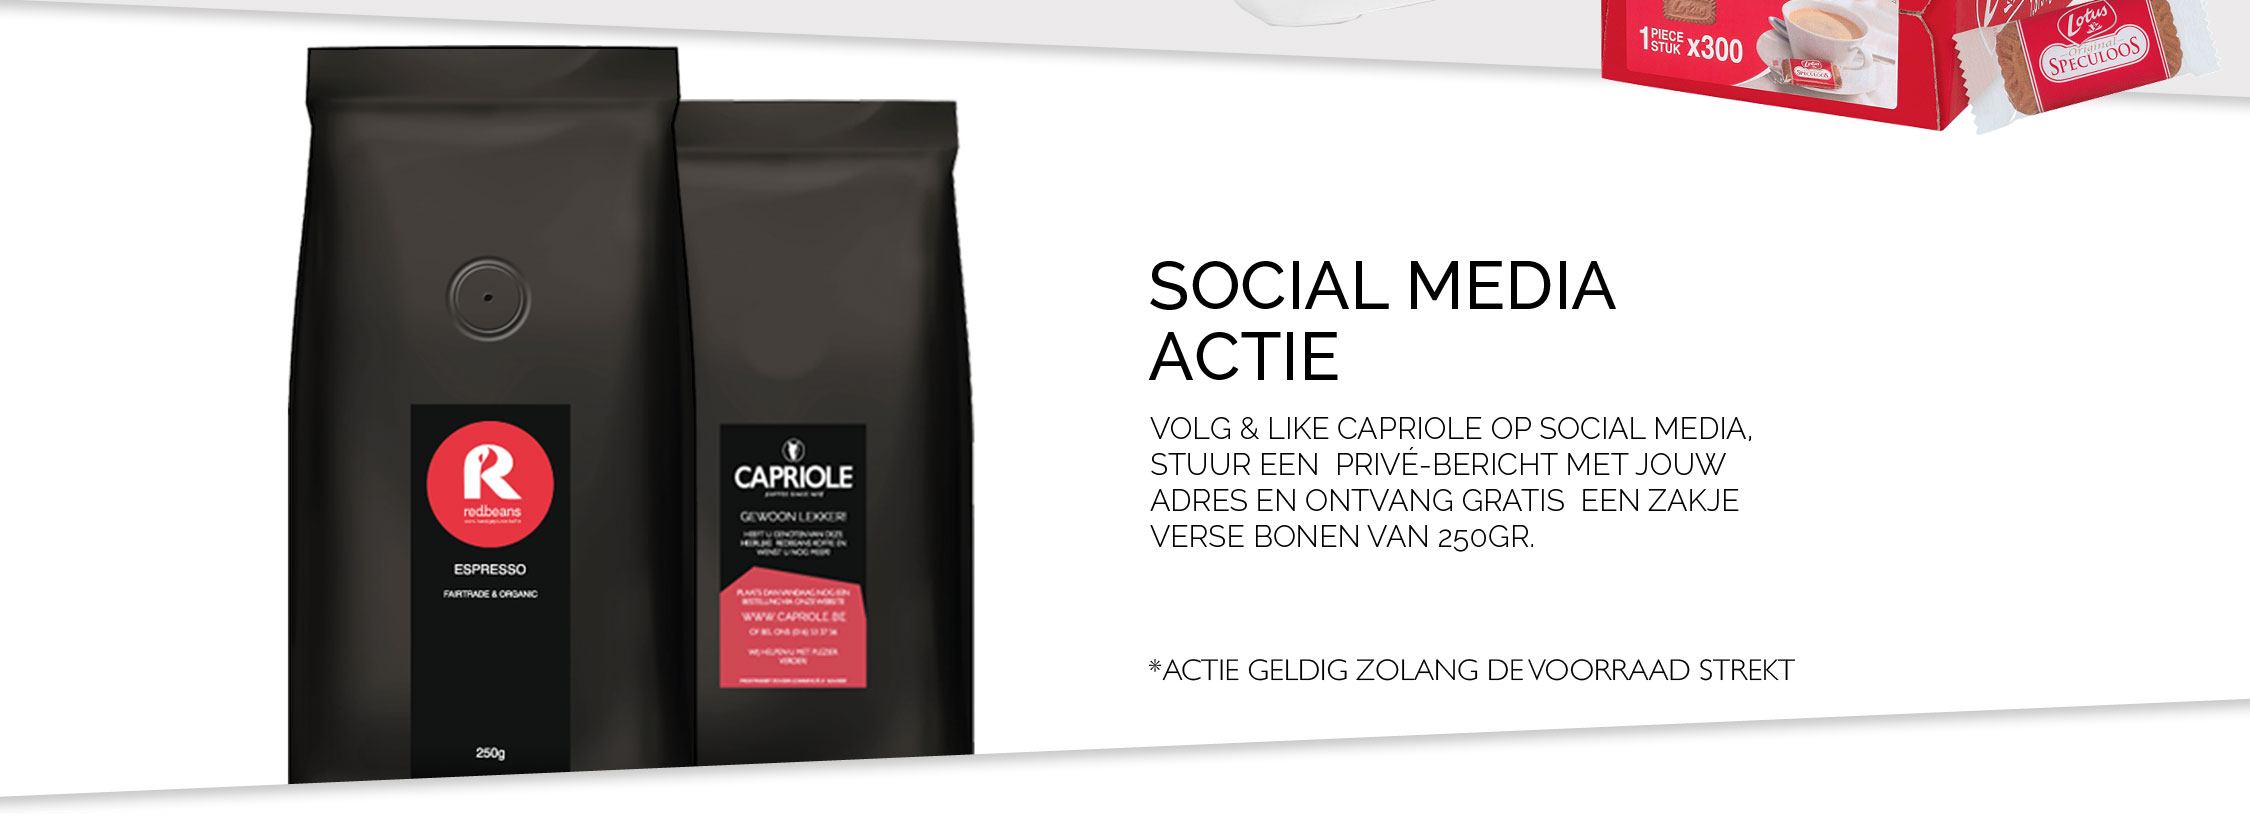 social-media-action-redbeans-capriole-coffee-service-homepage